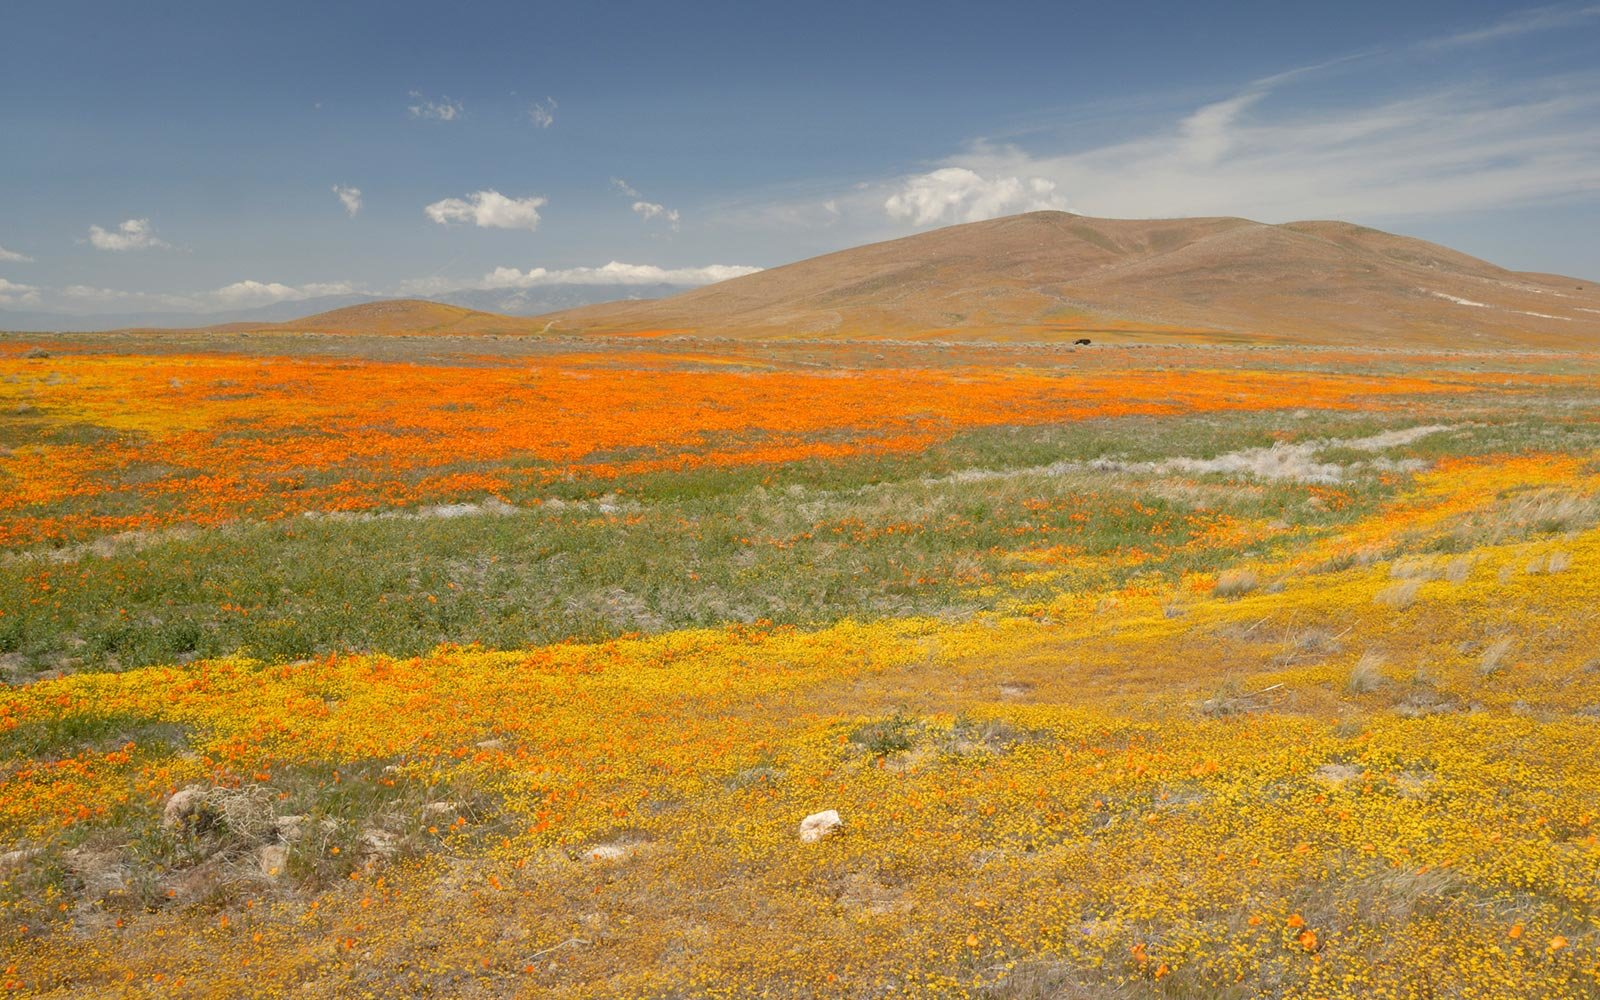 Couple Under Investigation for Landing Helicopter on a Poppy Field